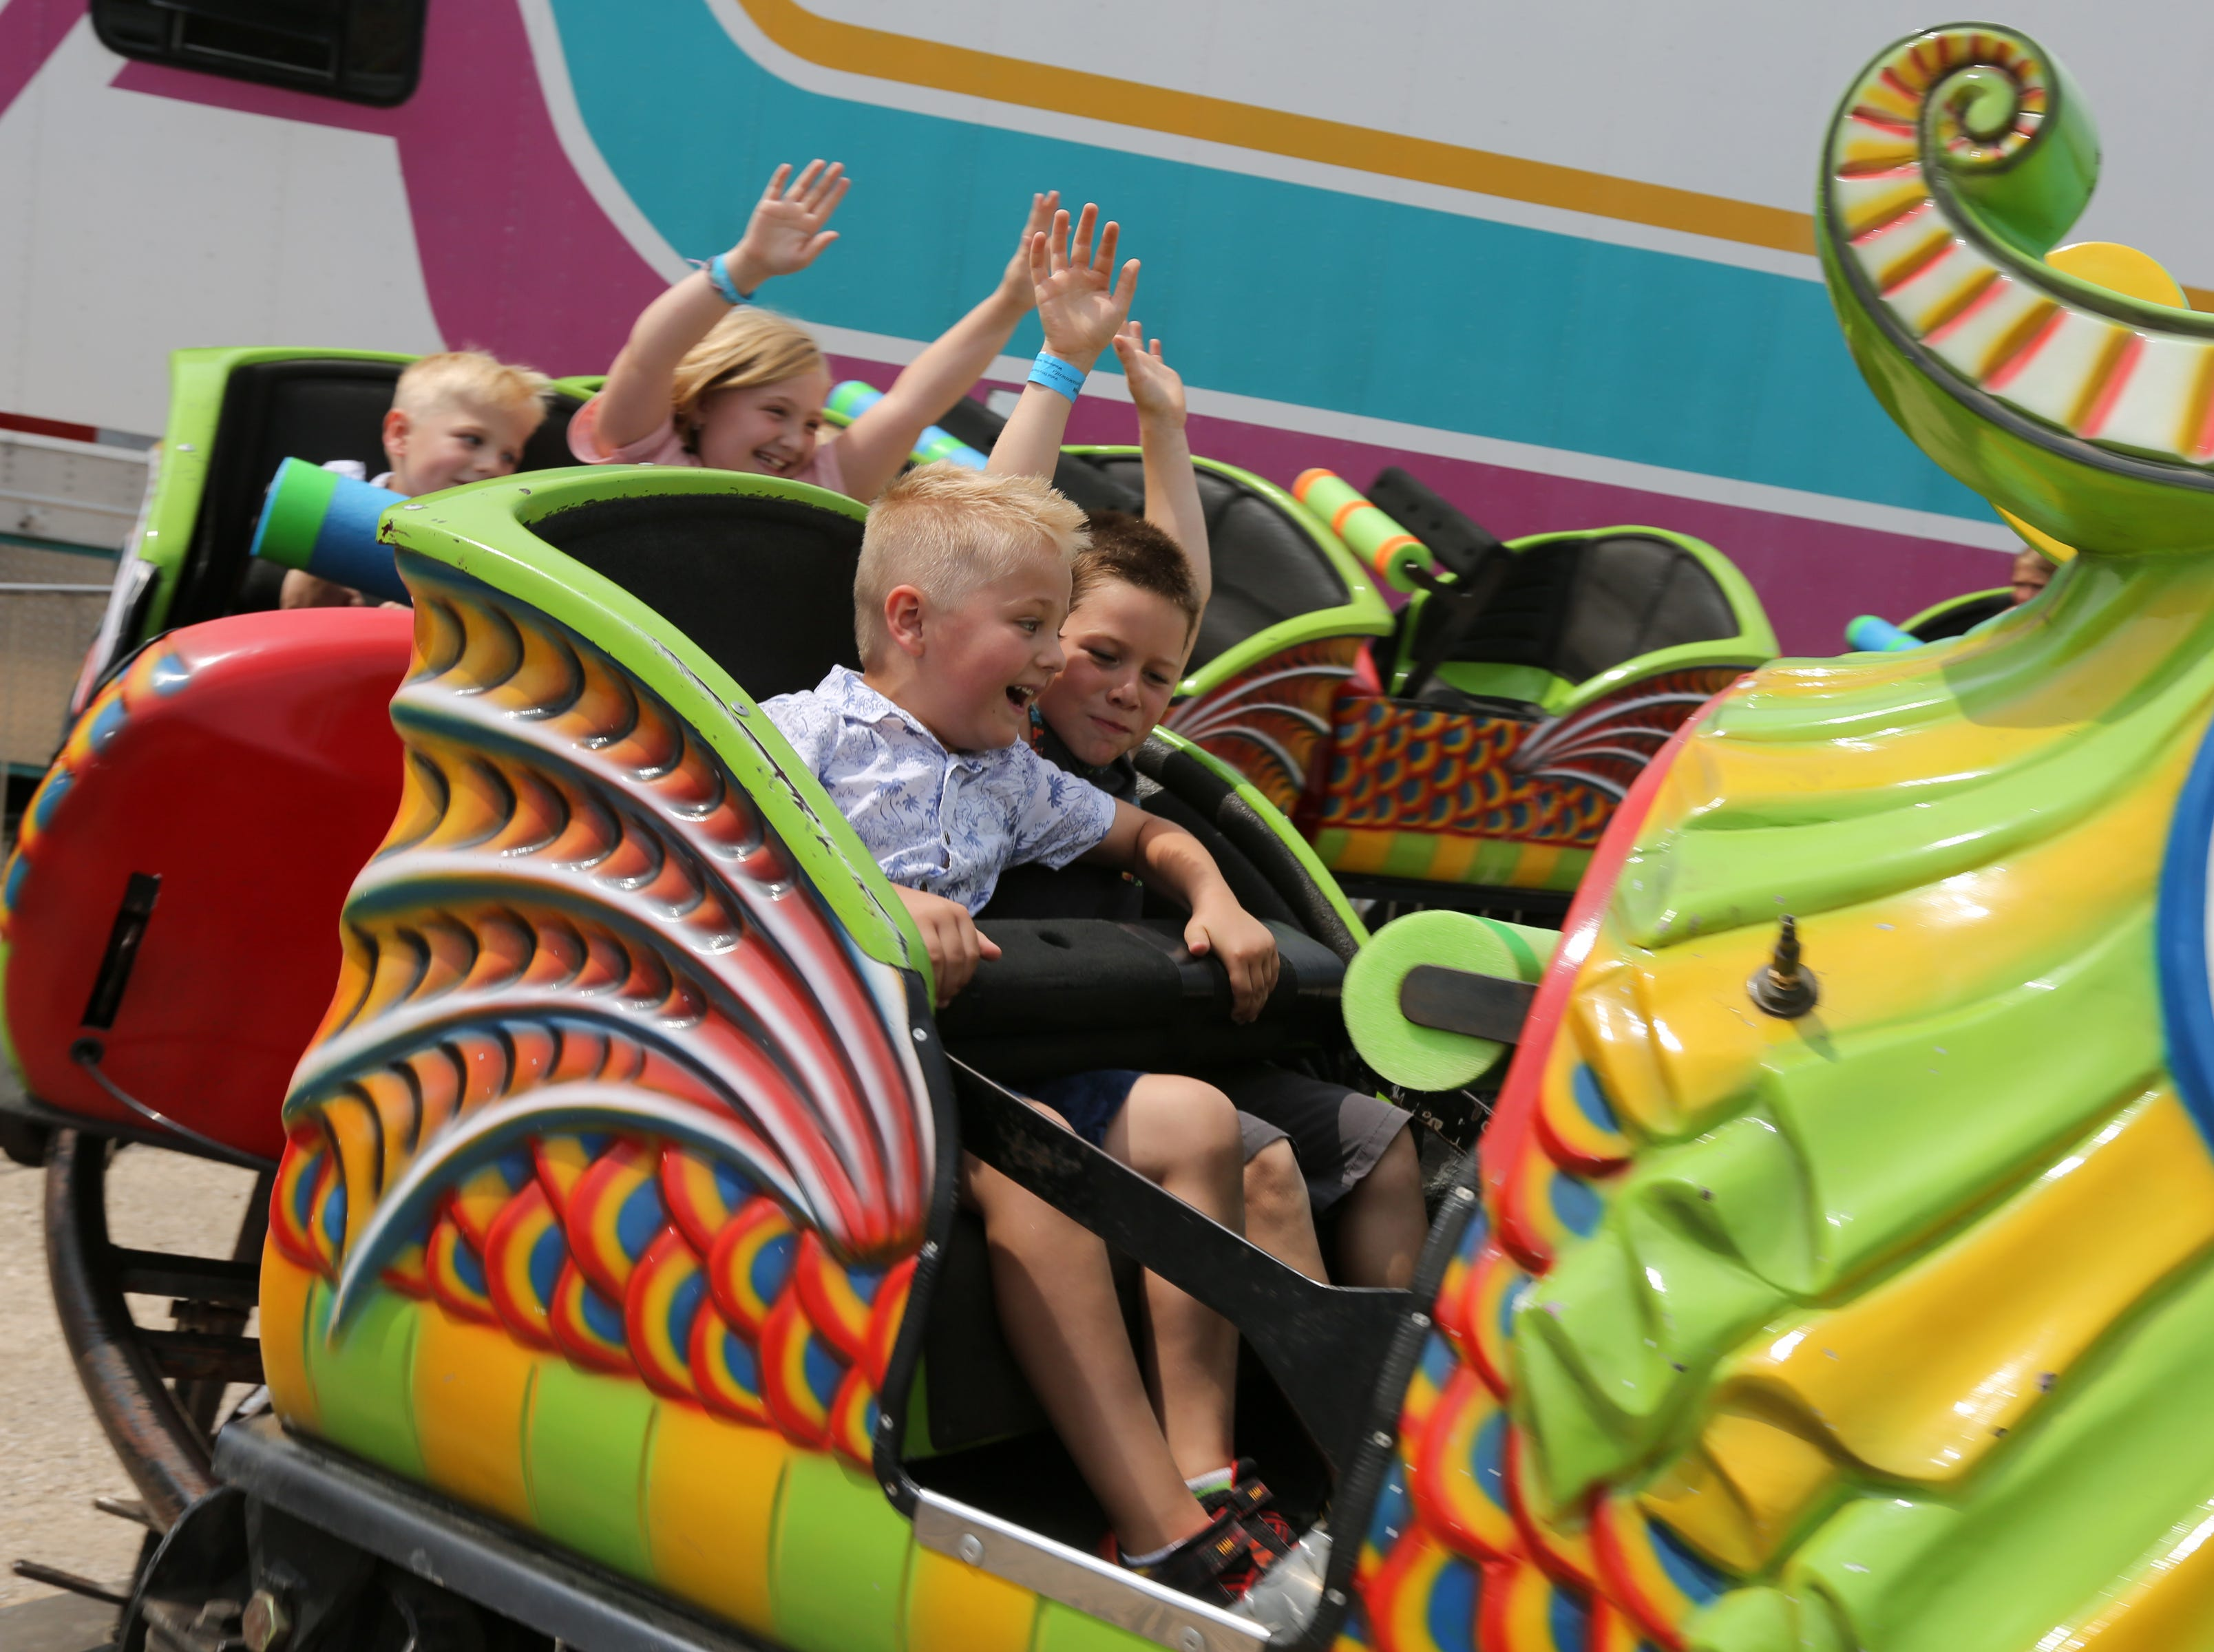 Kids ride a roller coaster during Mishicot Riverfest Saturday, August 4, 2018, in Mishicot, Wis. Josh Clark/USA TODAY NETWORK-Wisconsin